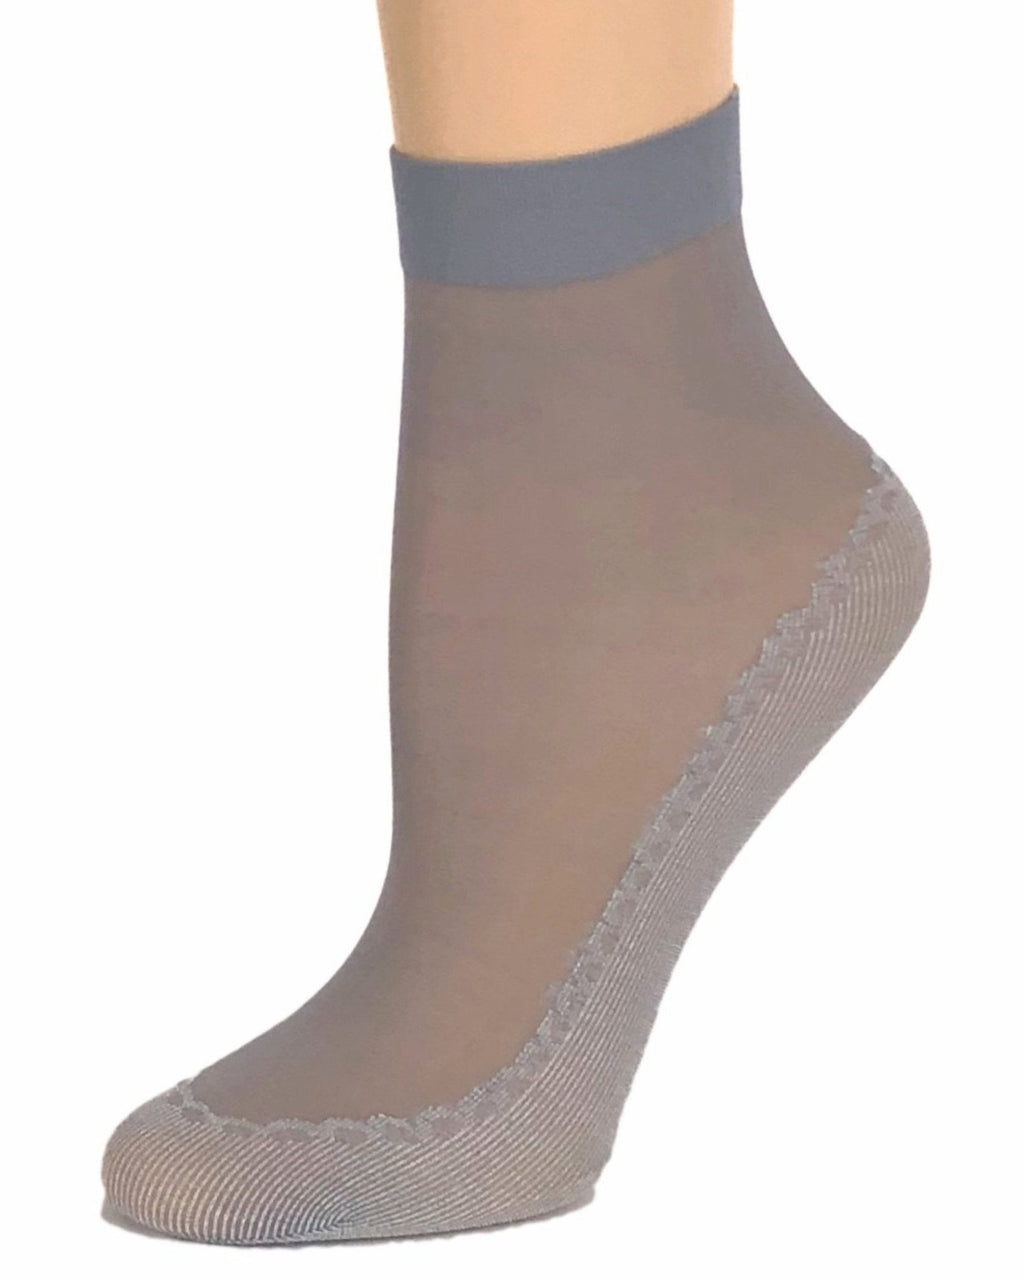 Classy Grey Sheer Socks - Global Trendz Fashion®